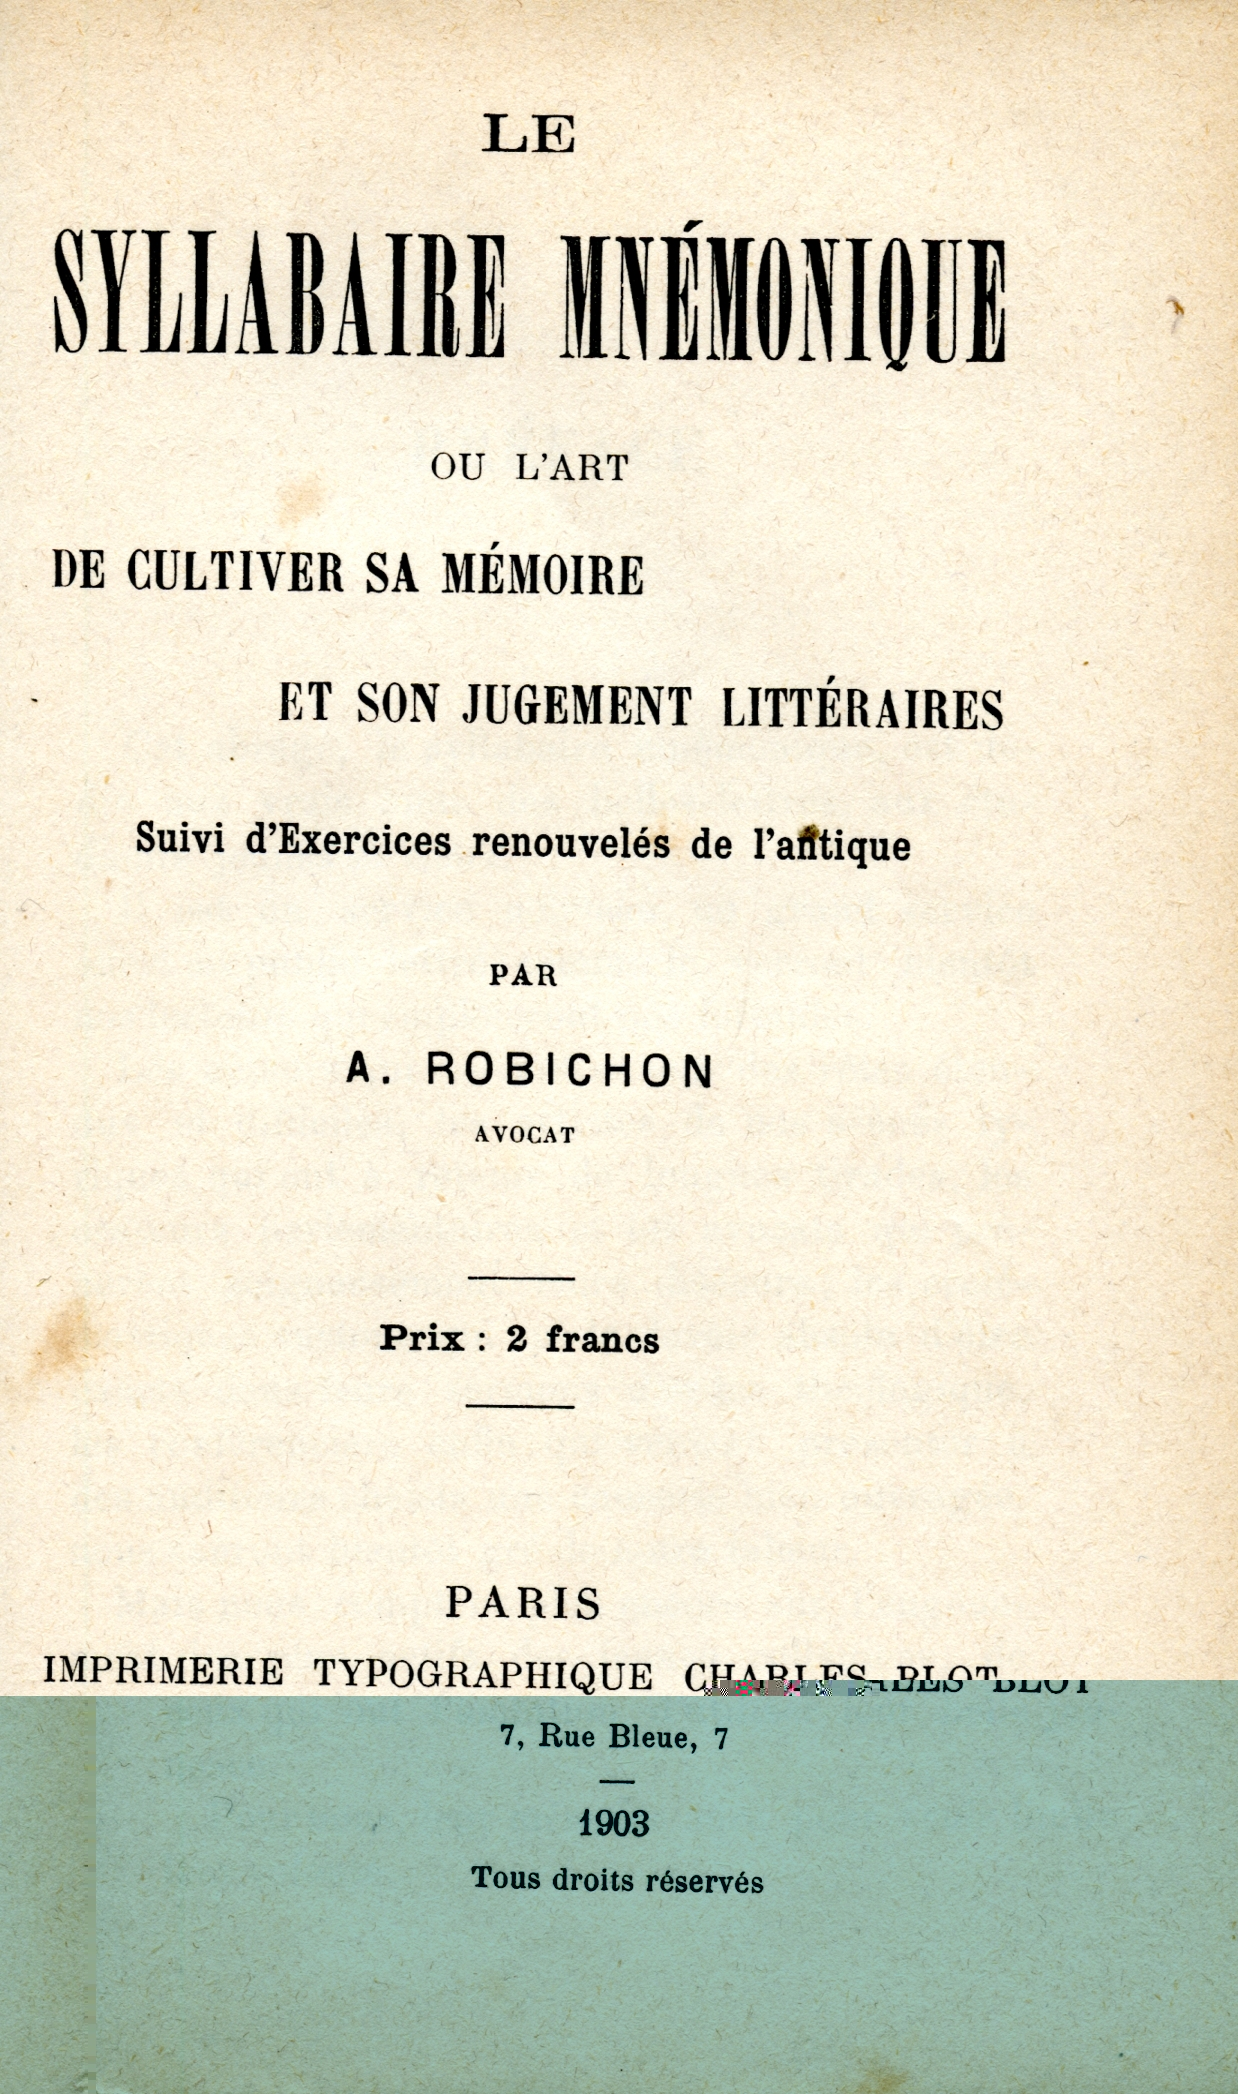 LE SYLLABAIRE MNEMONIQUE